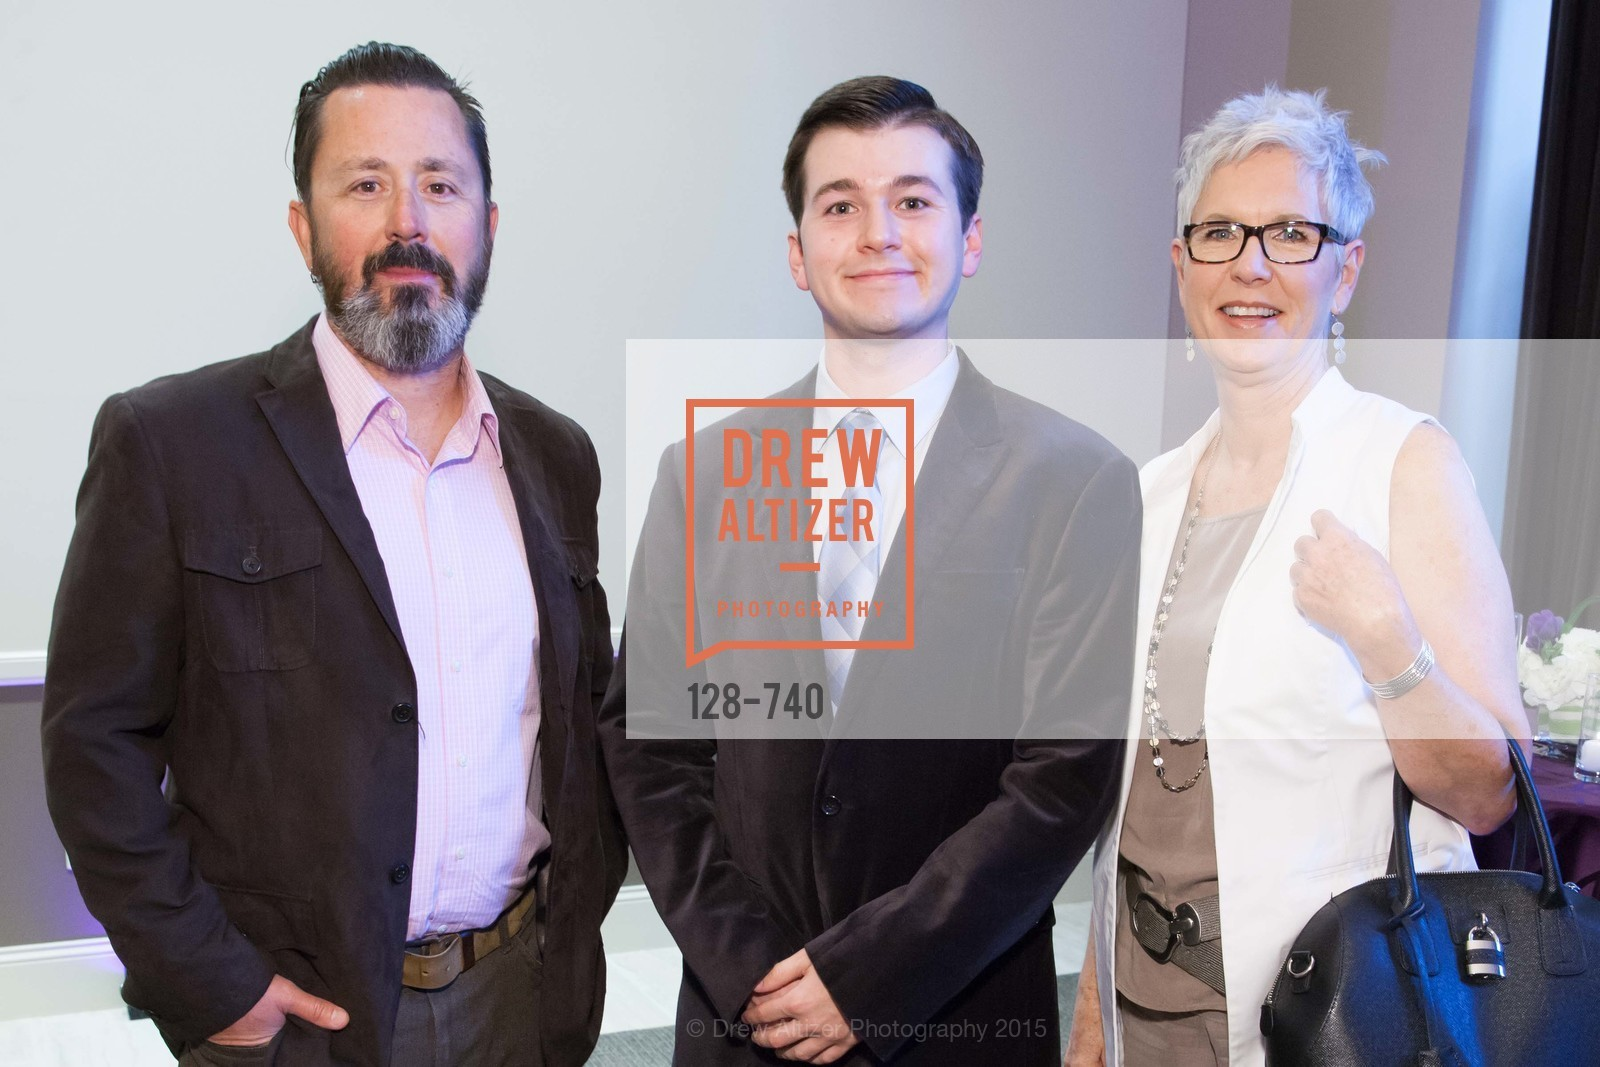 Michael Renfrow, Samuel Renfrow, Lori Richards, Aspire Annual College for Certain Dinne, US, May 21st, 2015,Drew Altizer, Drew Altizer Photography, full-service agency, private events, San Francisco photographer, photographer california